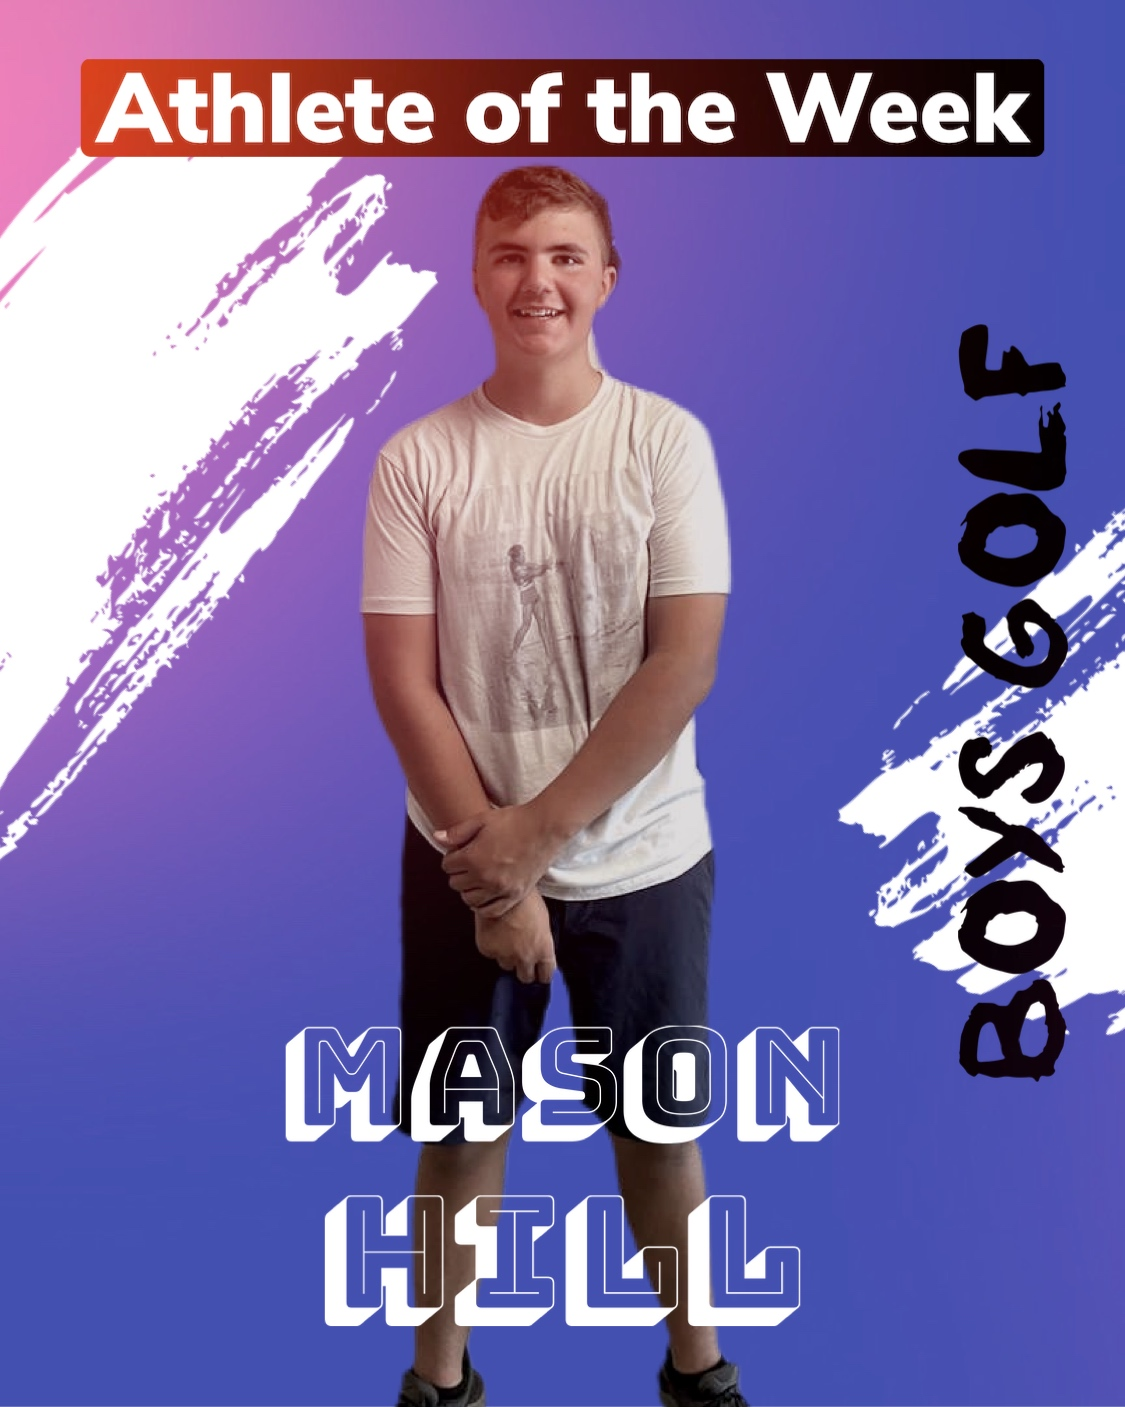 Athlete of the Week: Fast Five with Mason Hill (Sept. 20)